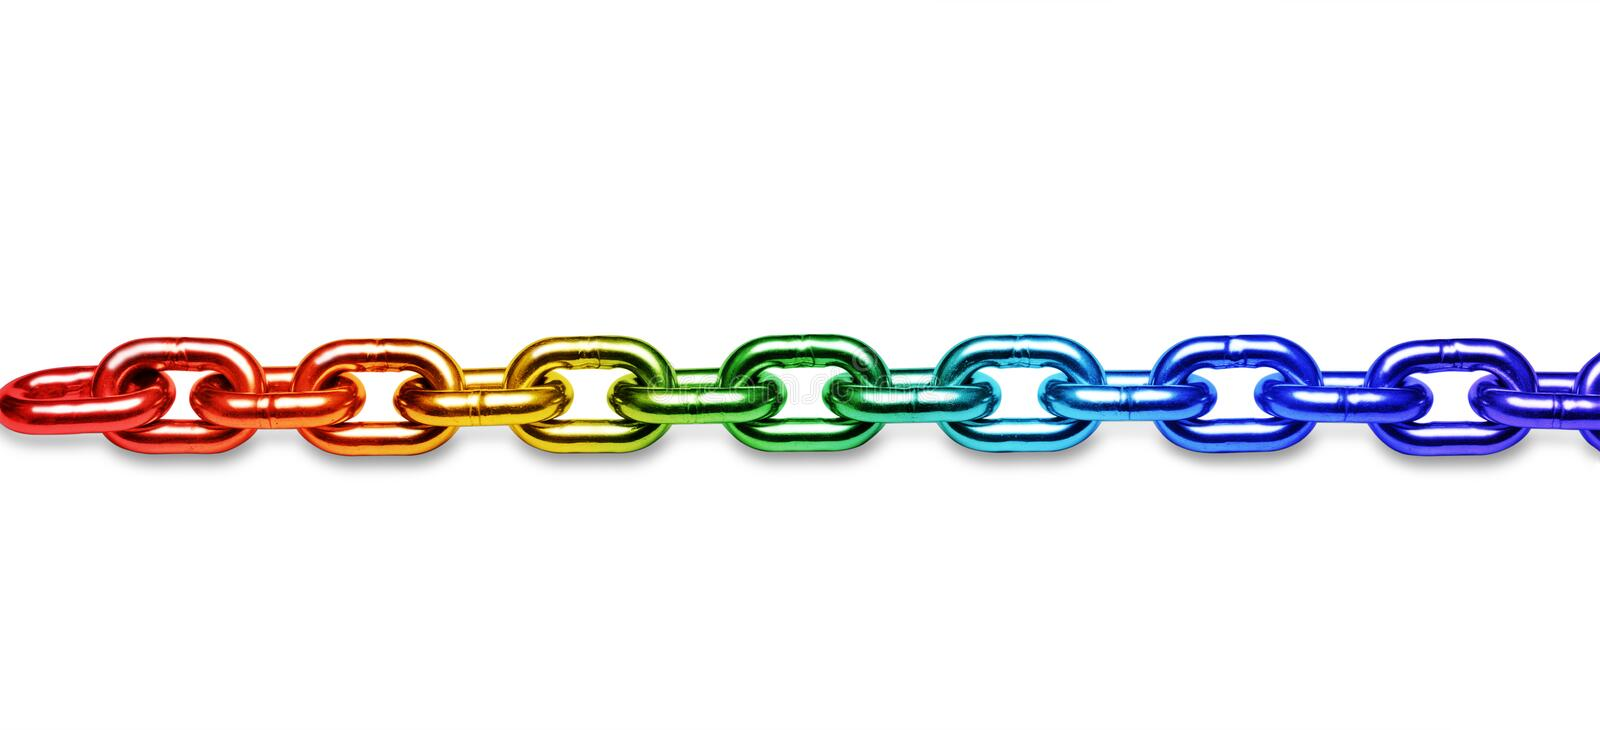 LGBT Rainbow Chain Background Identity Gender stock image